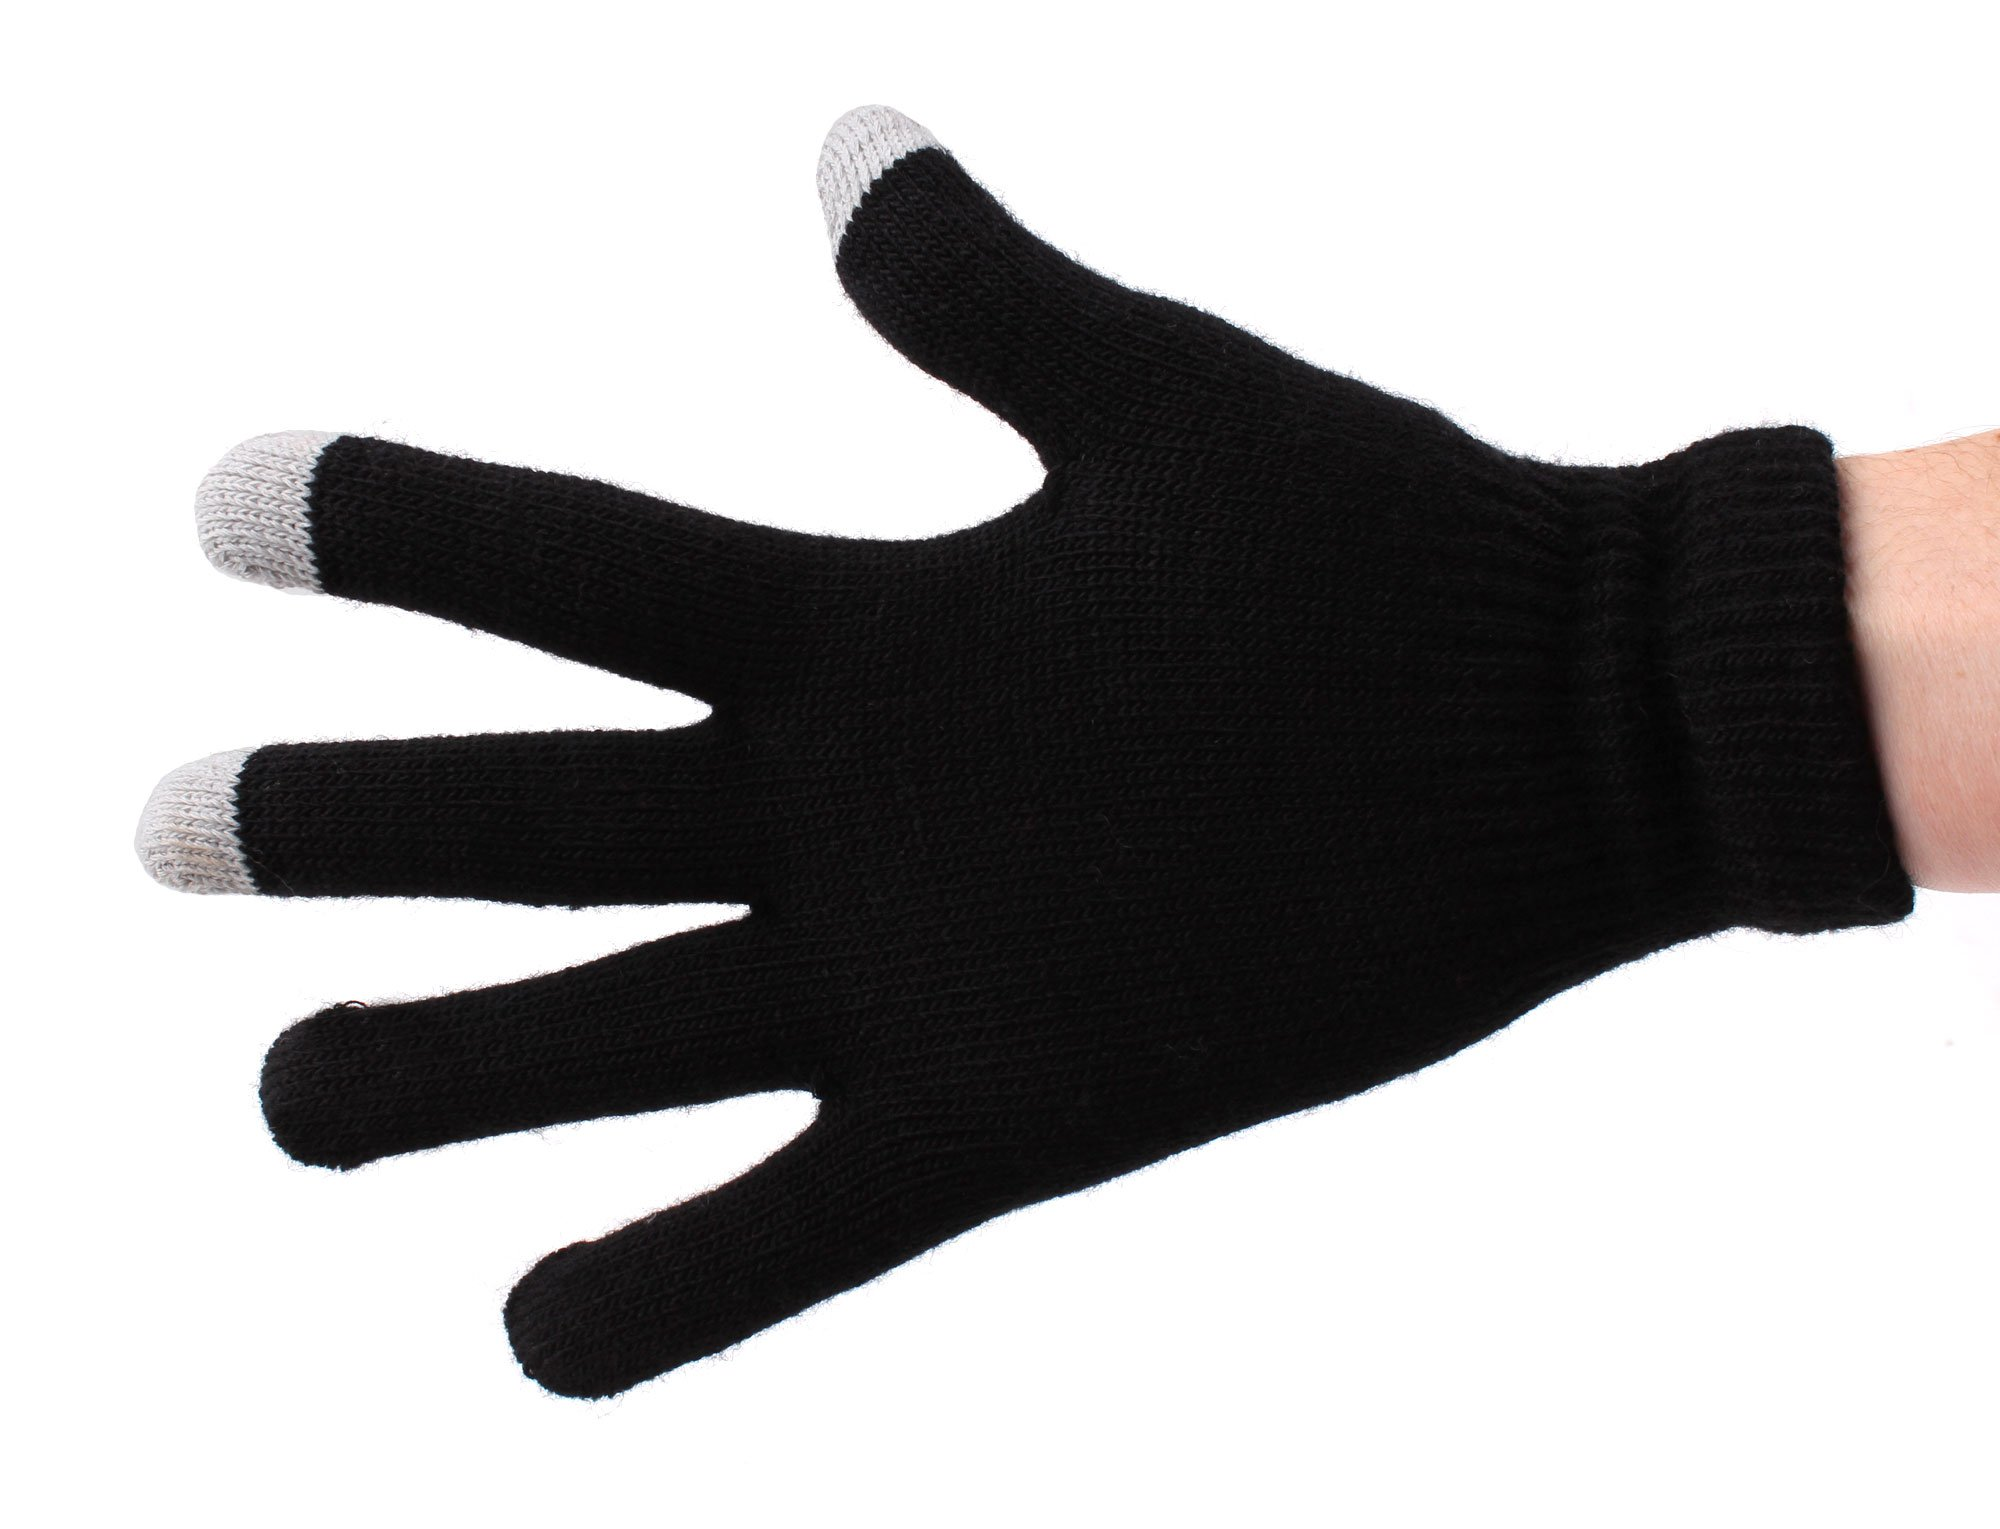 DURAGADGET Unisex Size Medium Black Touch Screen Gloves For Haier Pad Maxi 10.1'', Haier Mini 8'', Haier Mini 7'', I-Onik TP7-1000DC, I-Onik TP7-1200QC, I-Onik TP785-12000C, I-Onik TP8-1500DC by DURAGADGET (Image #2)